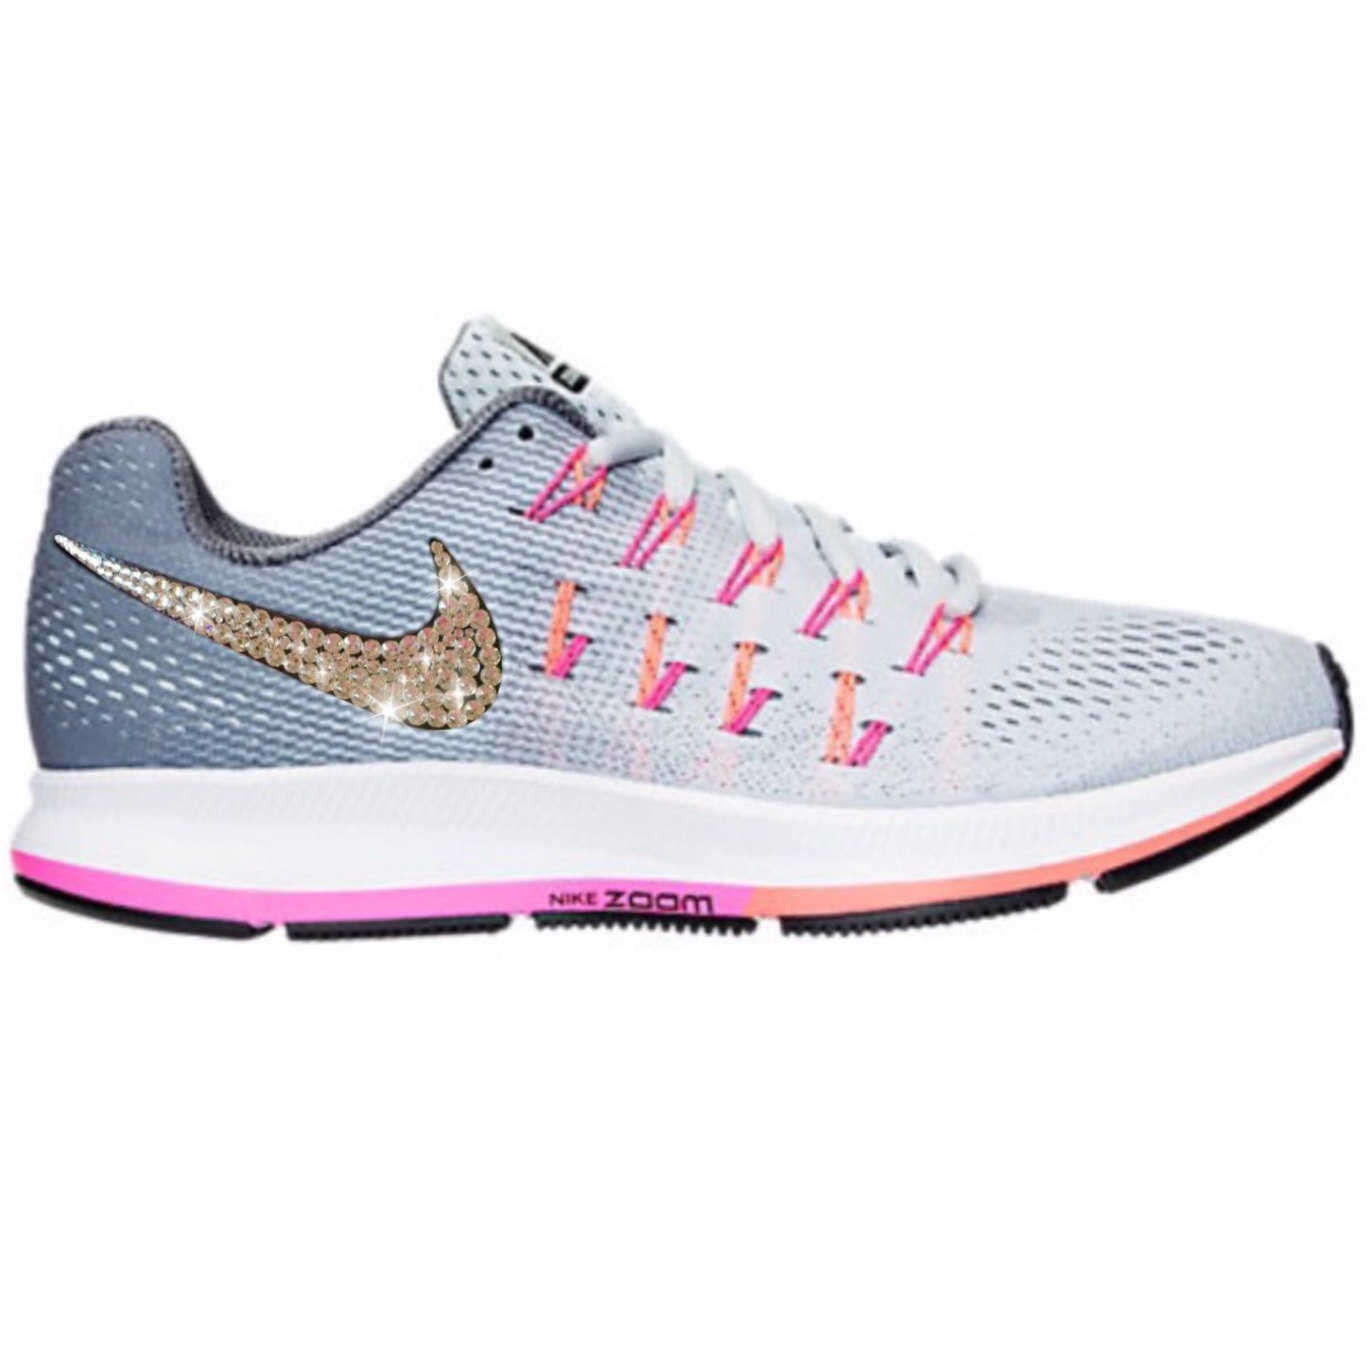 Bling Nike Air Zoom Pegasus 33 Shoes with Swarovski Crystals   Grey   Pink    Bedazzled ... 0eeaddebb